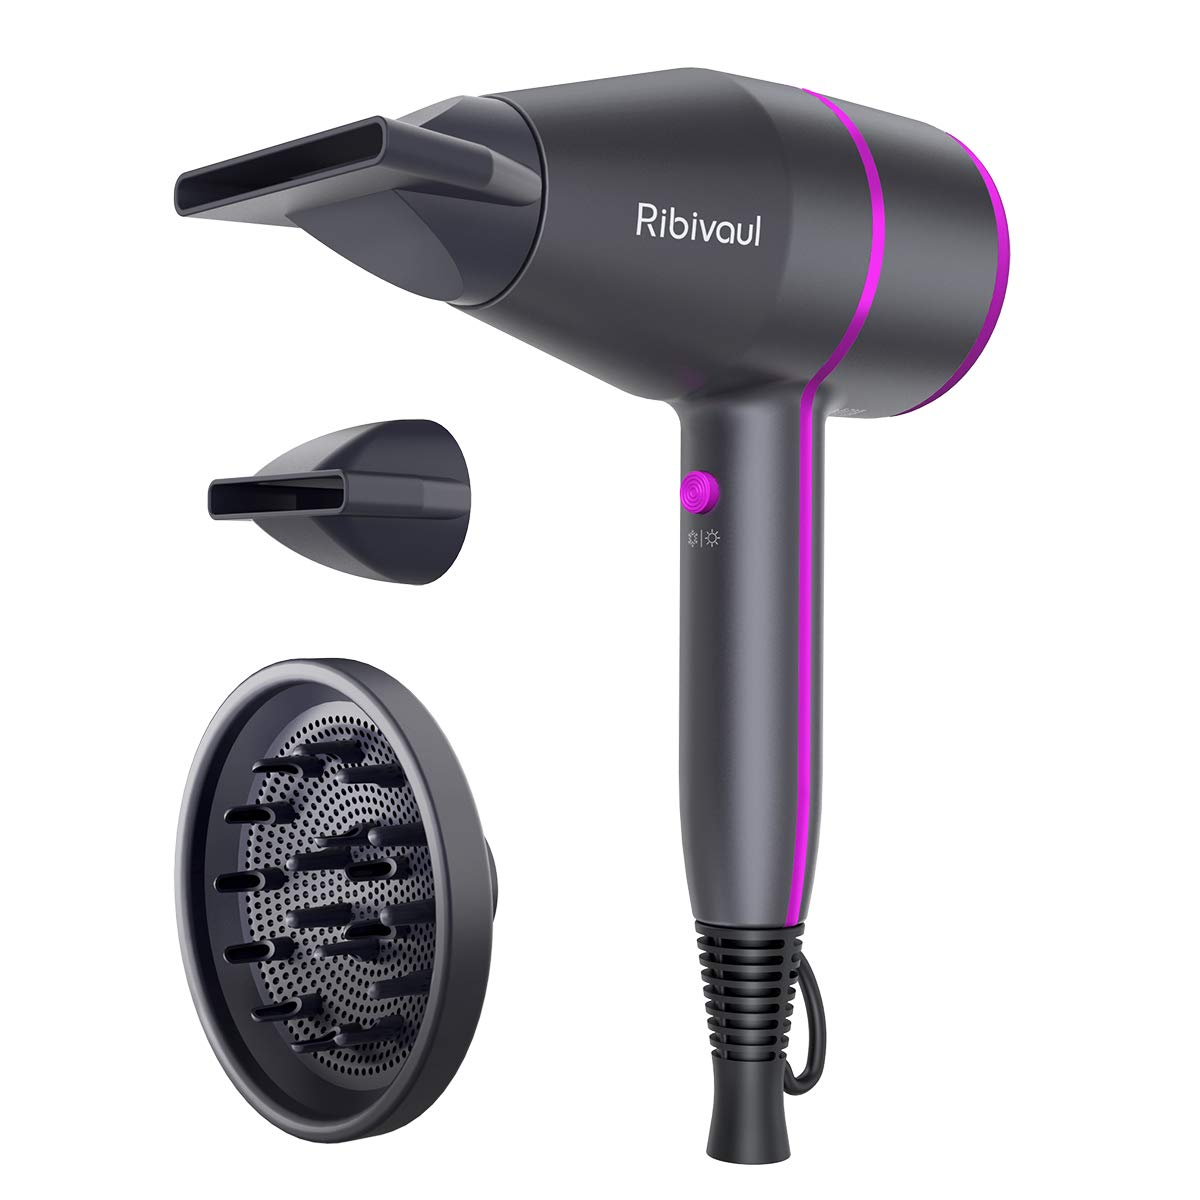 Ionic Hair Dryer Ribivaul Powerful 1875 Watt Hairdryer 2 Speed 3 Heating Salon Home Use Blow Dryer for Fast Drying Styling Negative Pro Ion Blower with Diffuser Concentrator Comb Portable Size